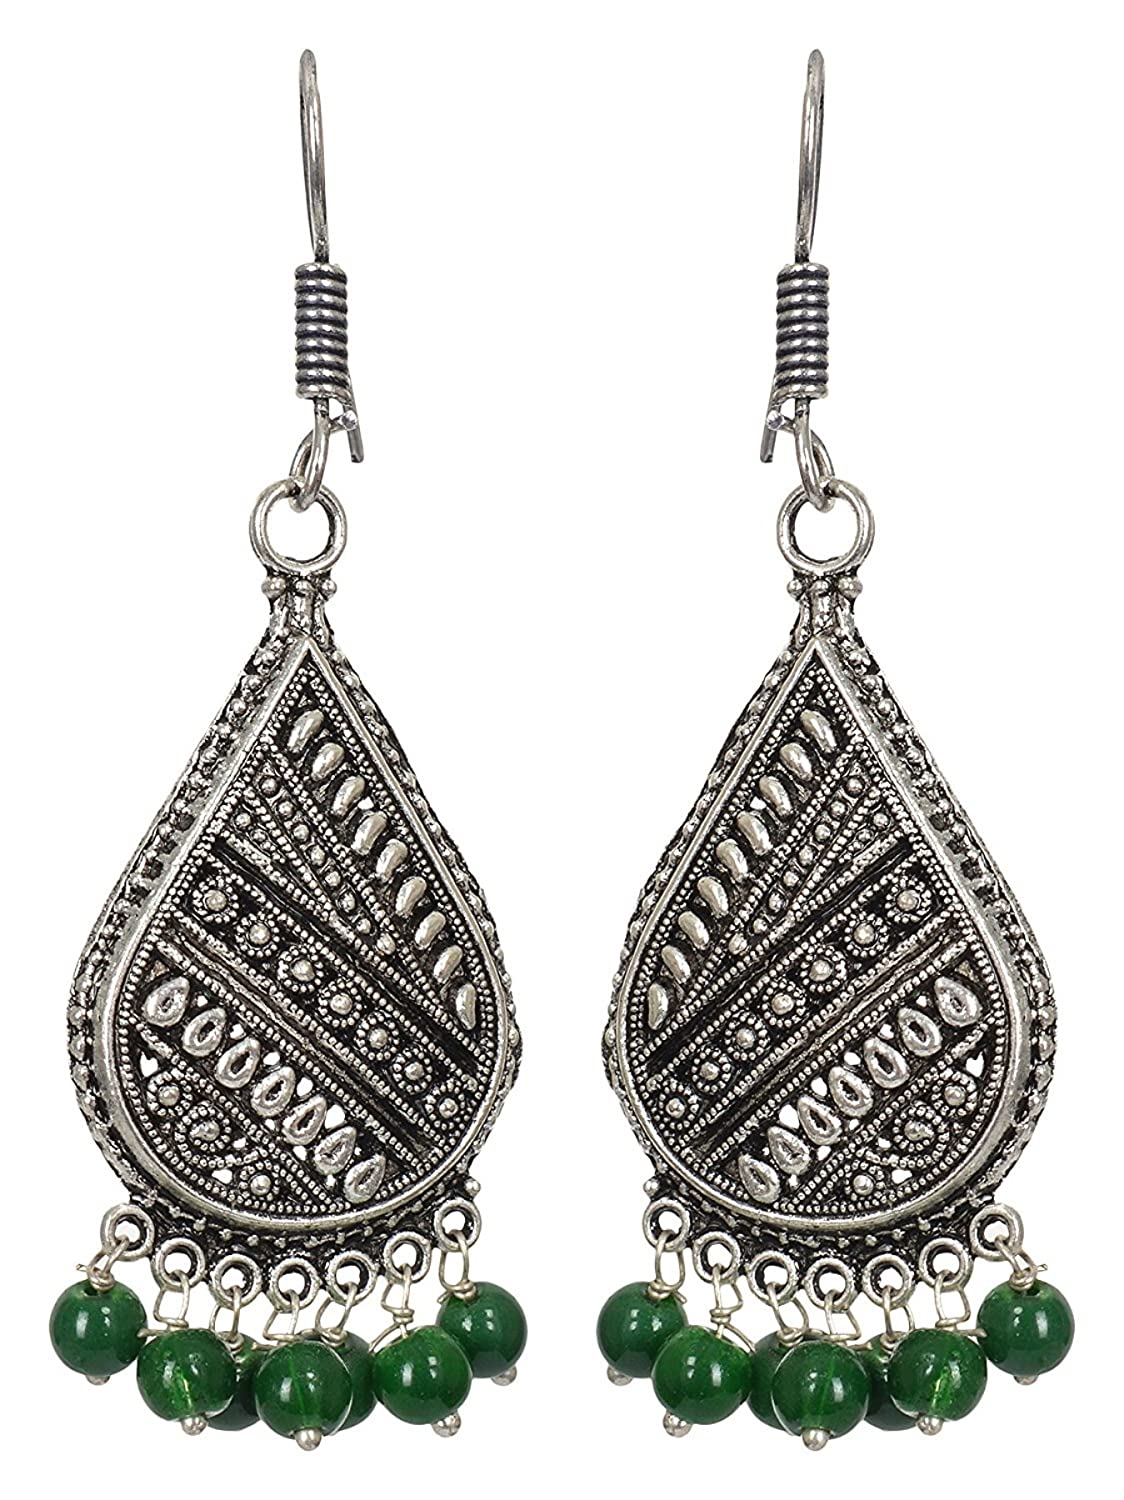 Subharpit Light Weight Green Beads Oxidized Traditional Indian Jhumka Jhumki Earring for Woman /& Girls